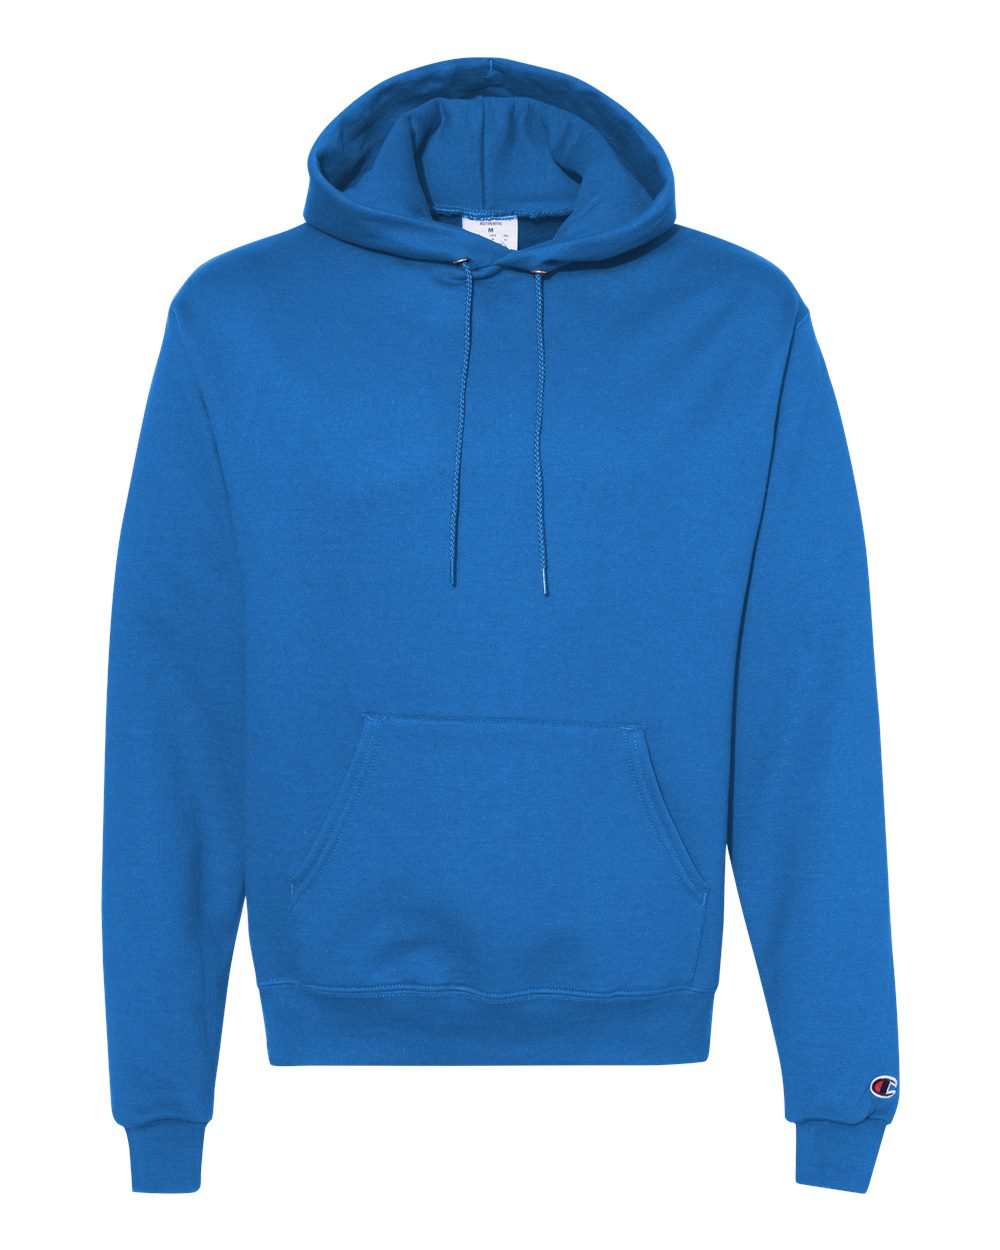 Champion-Mens-Double-Dry-Eco-Hooded-Sweatshirt-Hoodie-Pullover-S700-up-to-3XL miniature 36